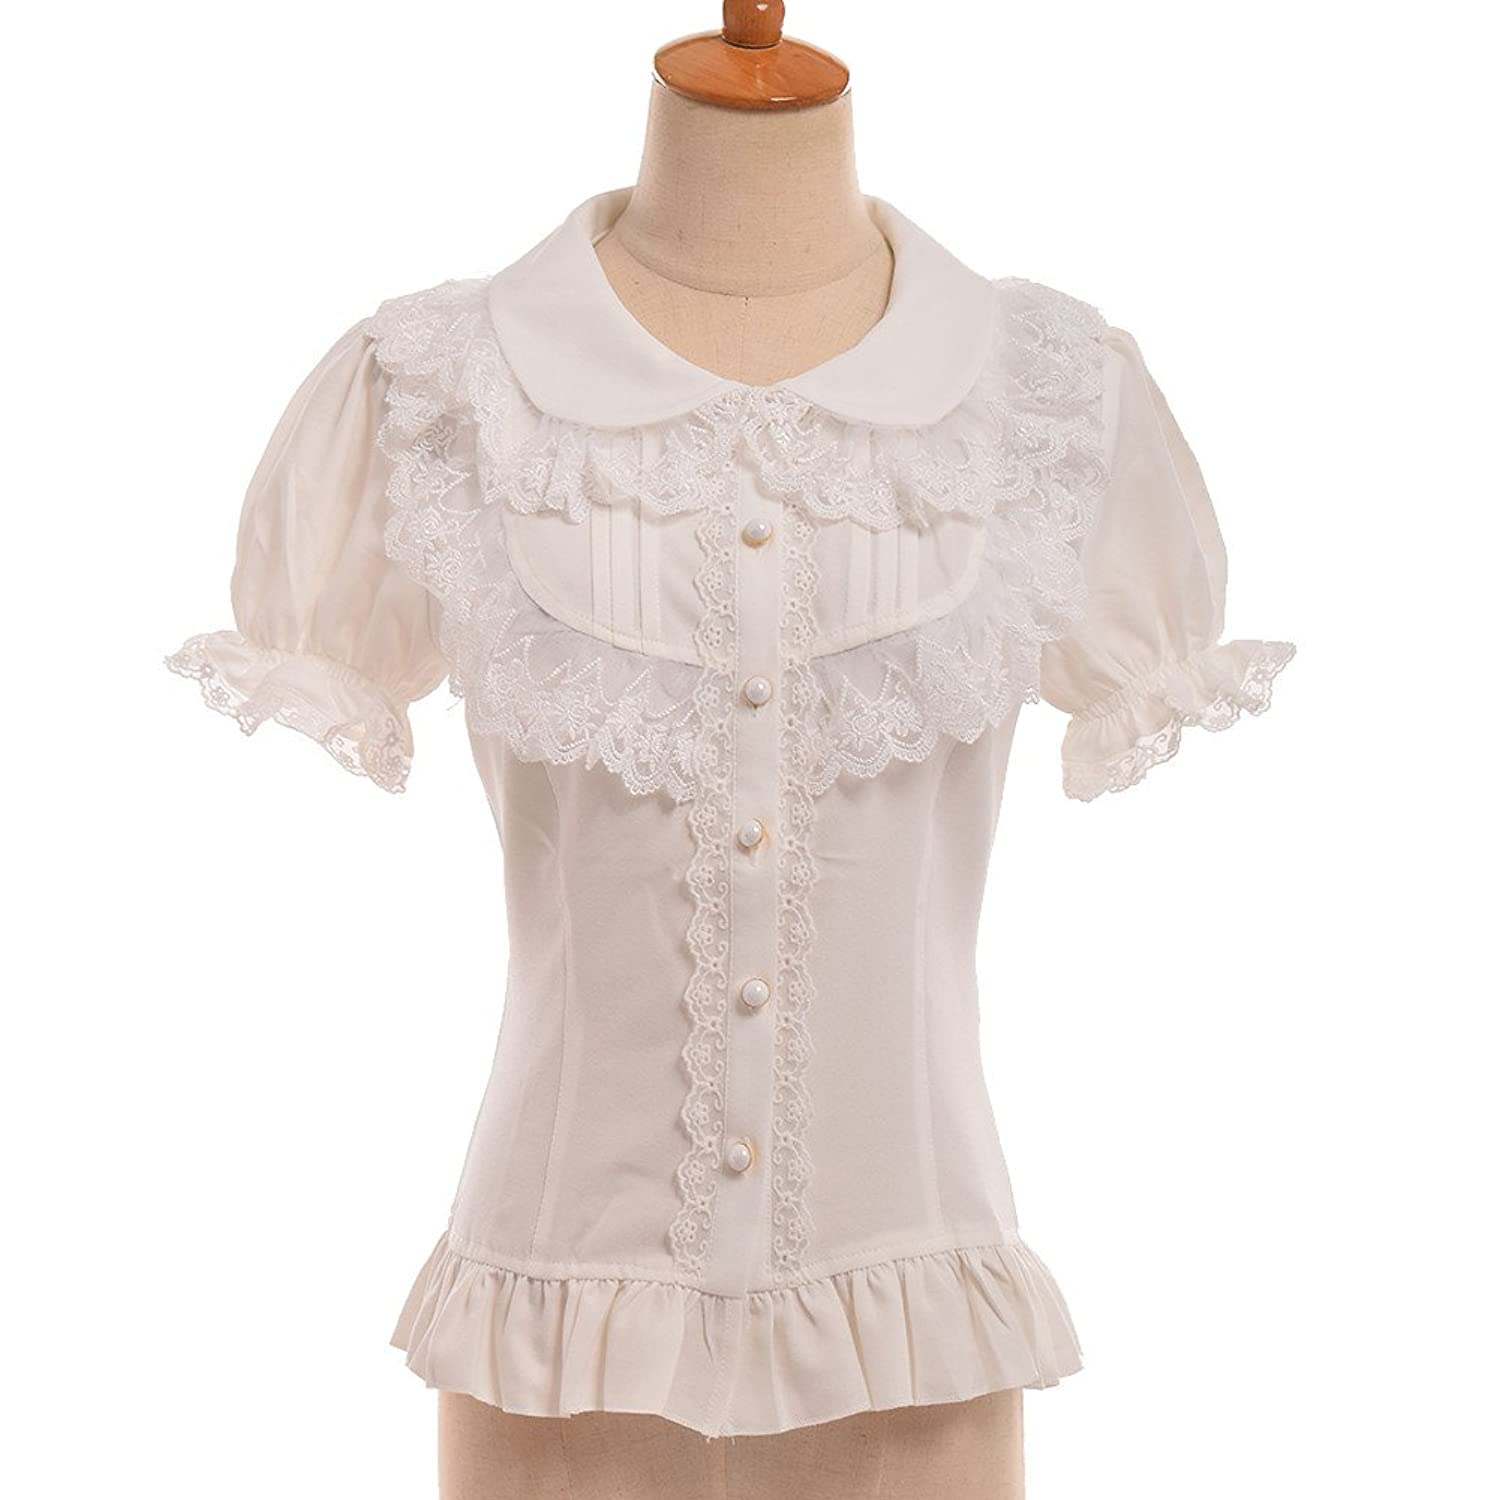 Edwardian Ladies Clothing – 1900, 1910s, Titanic Era GRACEART Womens Victorian Short Sleeve Shirt  AT vintagedancer.com